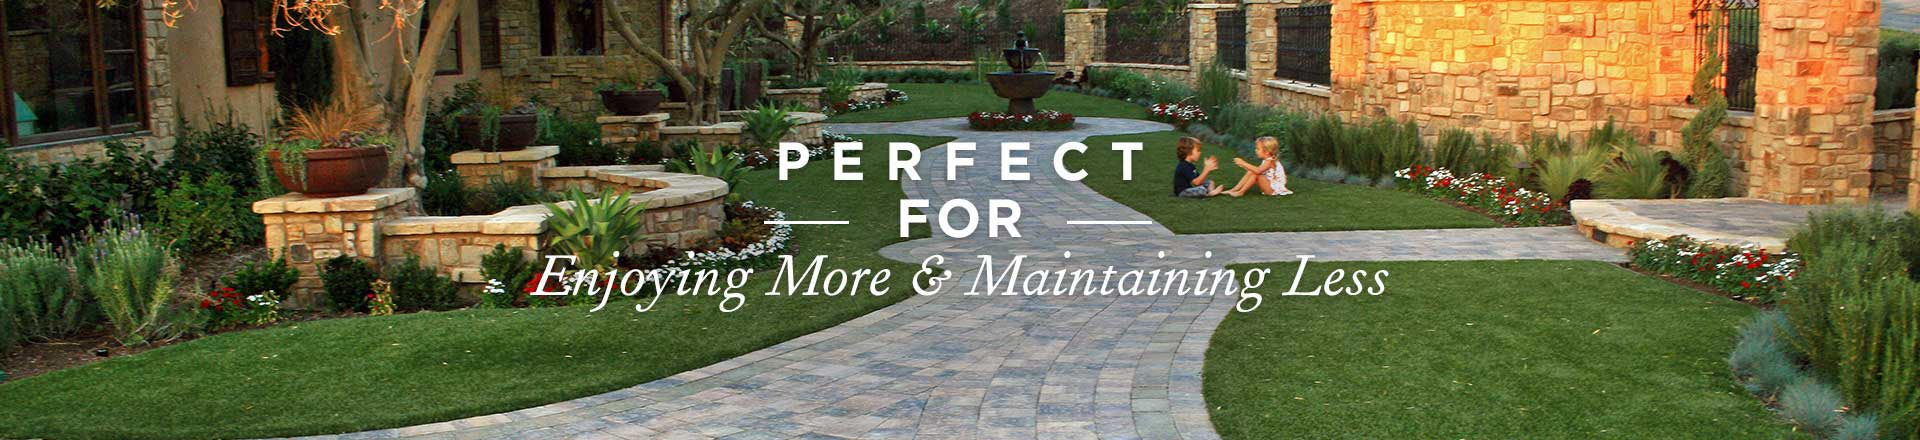 Beautiful and durable paver driveways